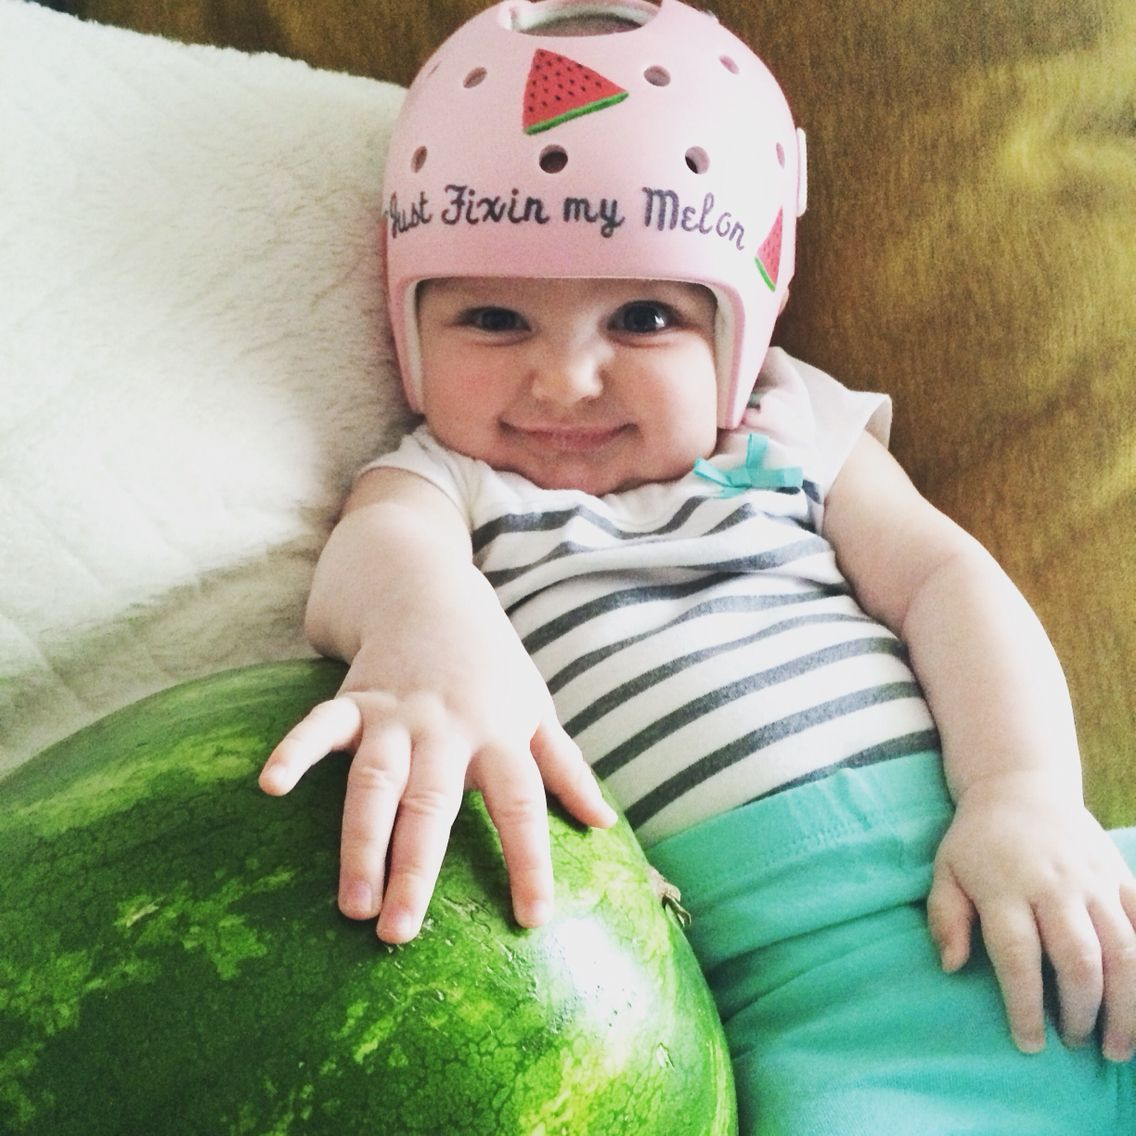 I decorated winnies helmet just fixin my melon shes a helmet baby fixing her flat spot plagiocephaly on the back of her head